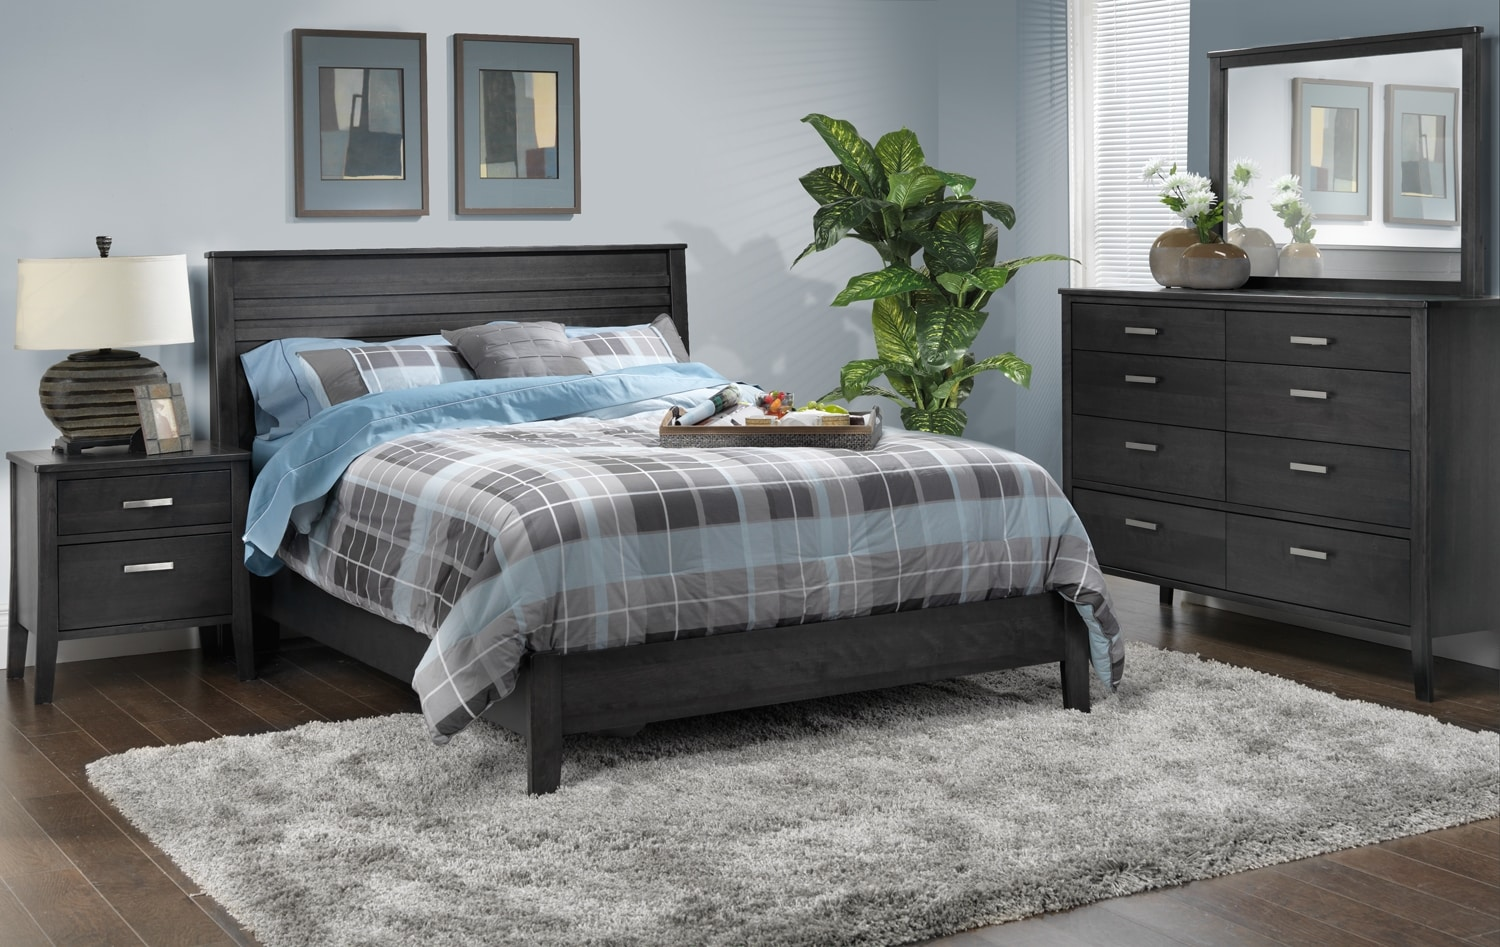 Yorkville 5-Piece Queen Bedroom Set - Charcoal